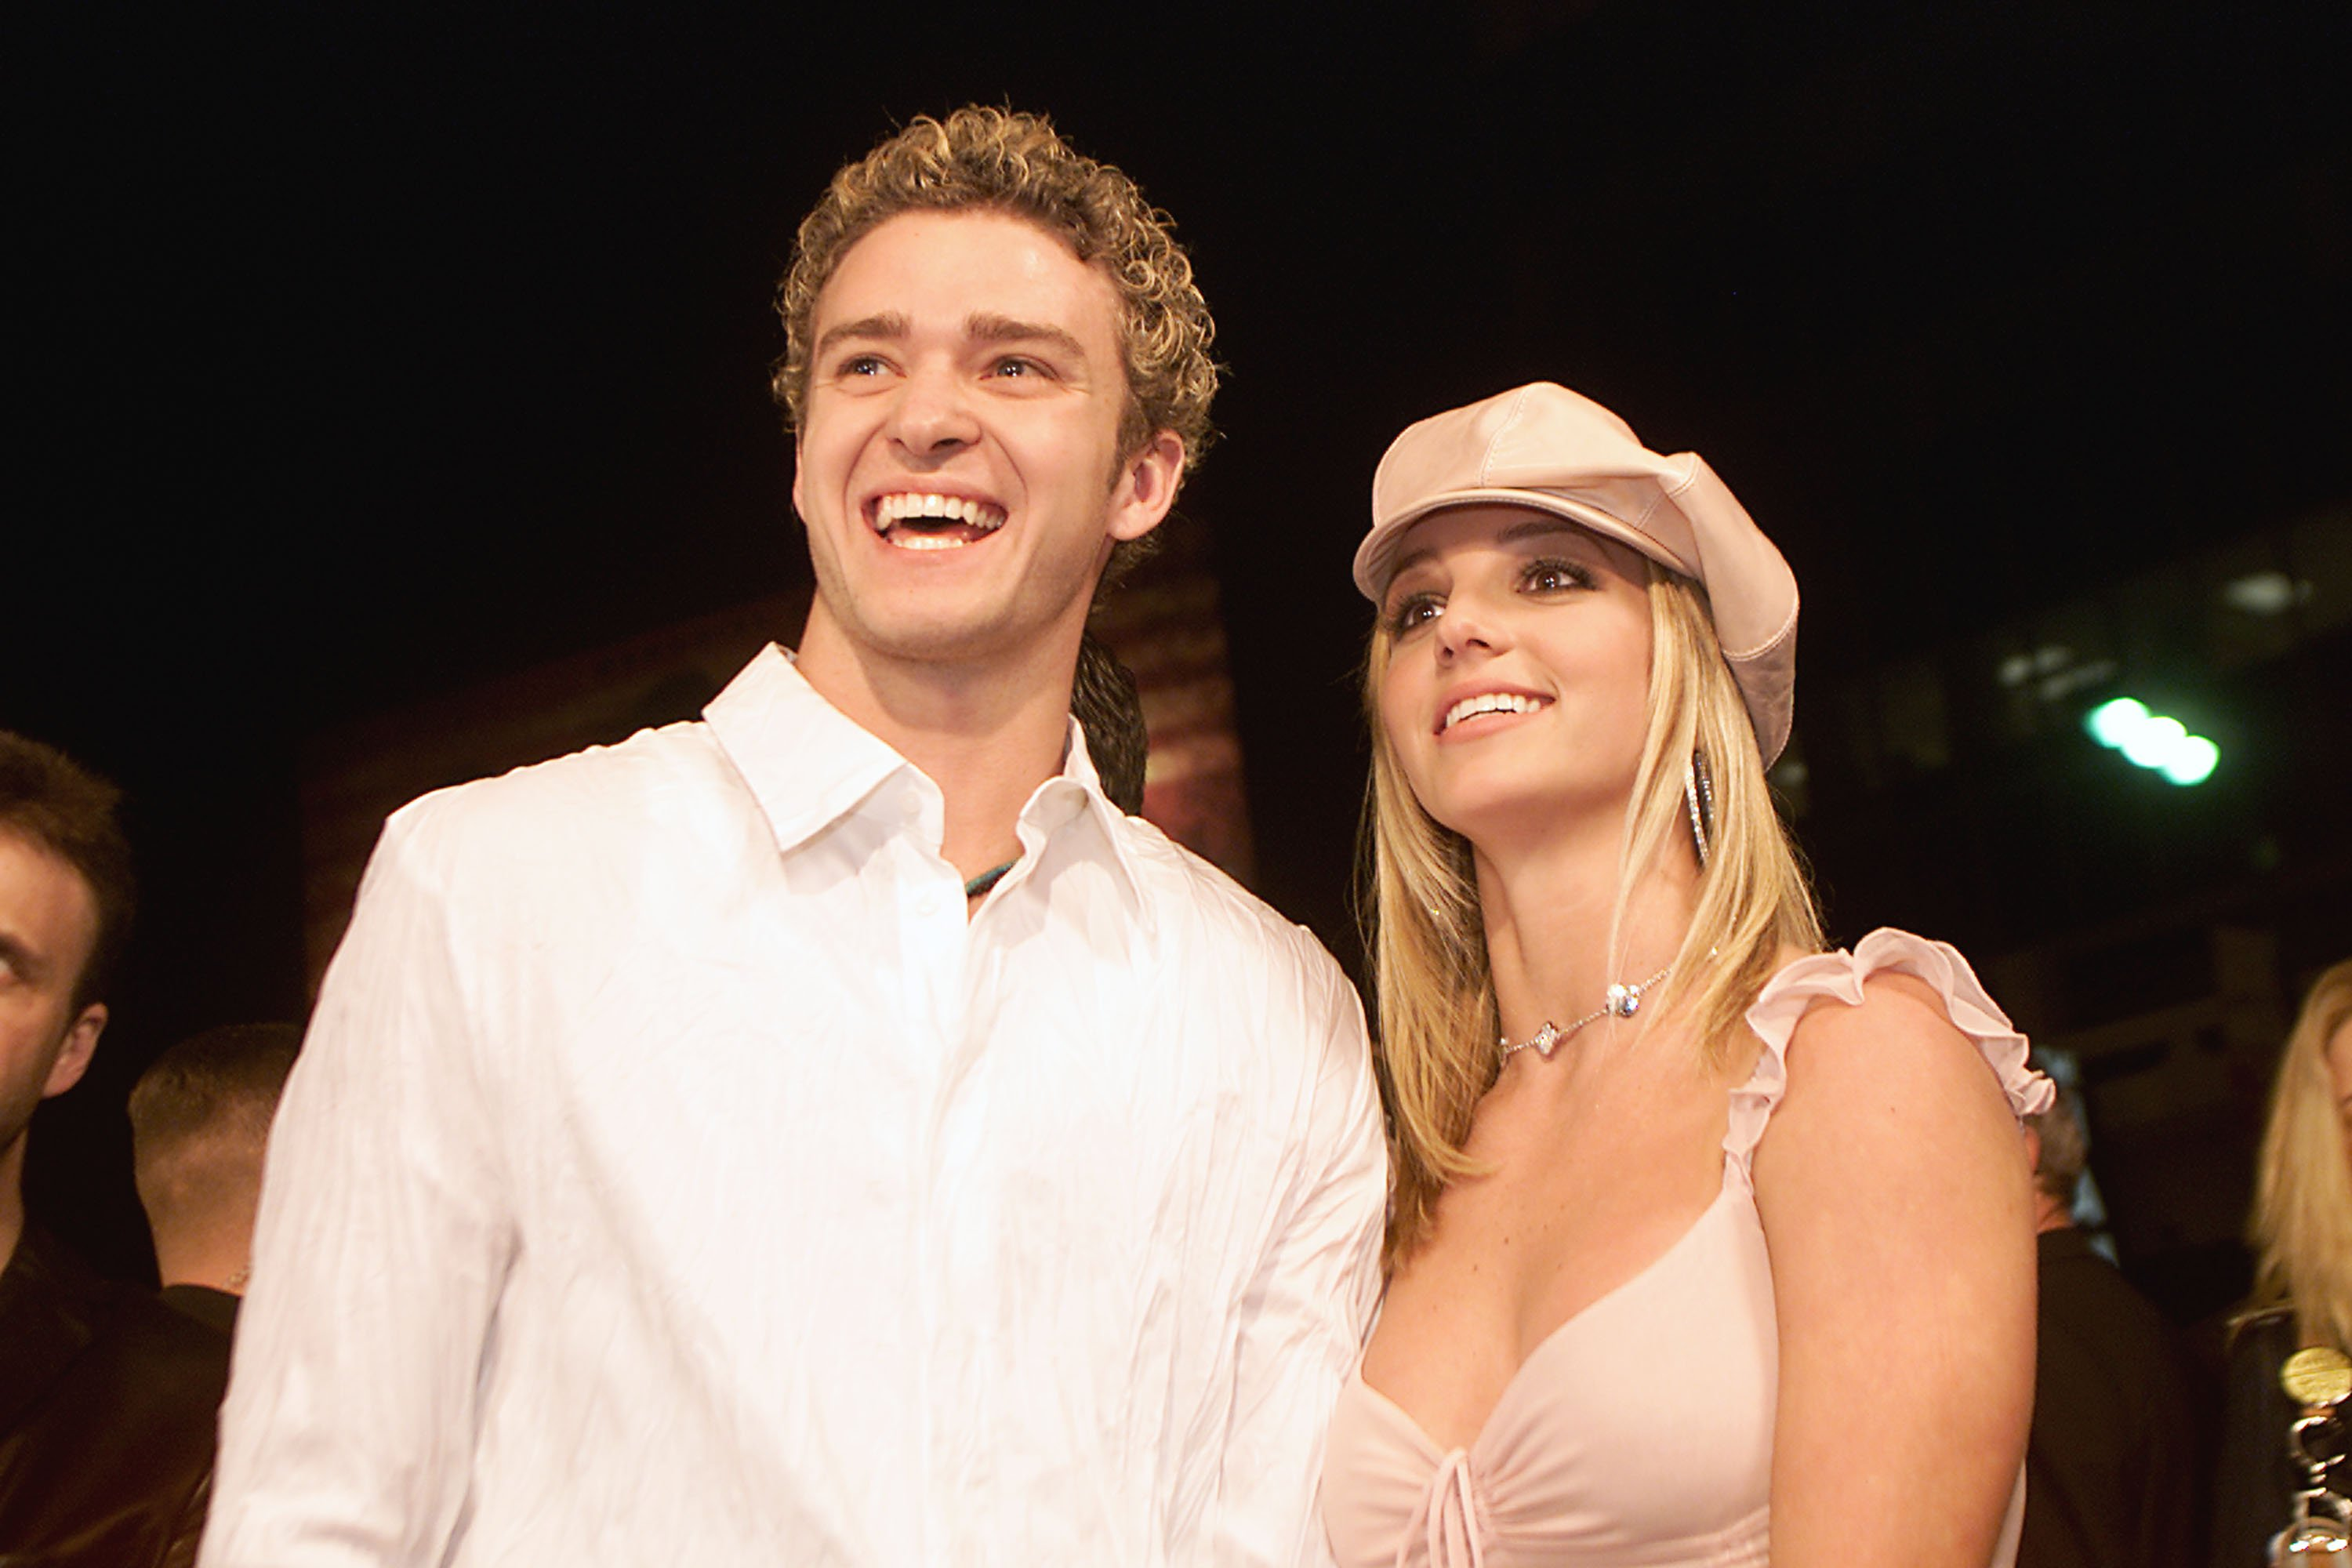 """ustin Timberlake during the 2002 premiere of Britney Spears' movie """"Crossroads"""" in California. 